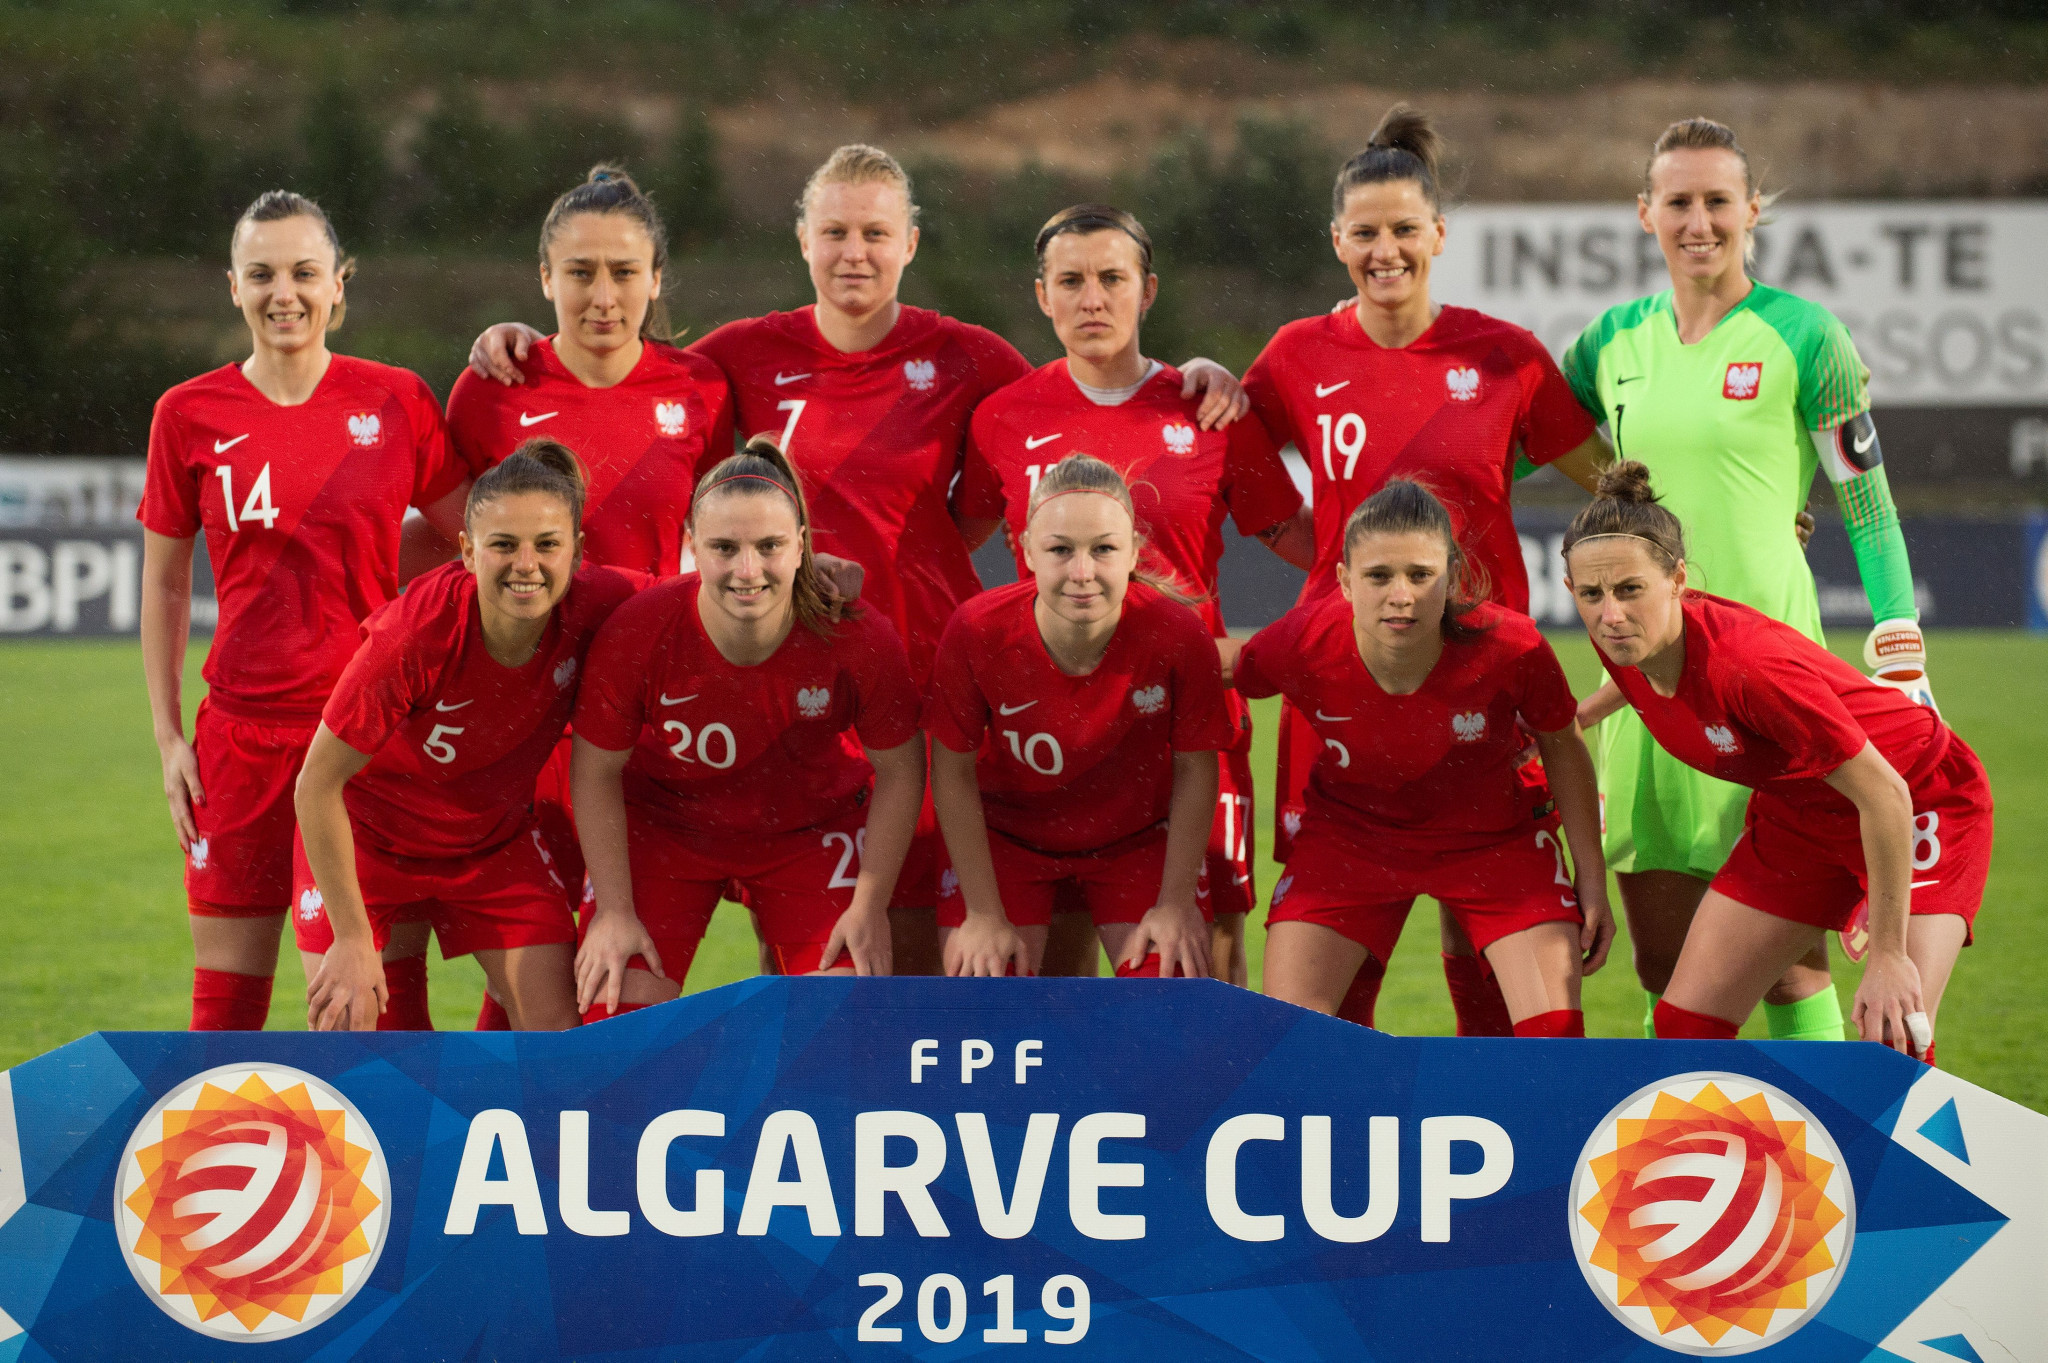 Poland moved up six places to 28th in the FIFA women's world rankings after reaching the final of the Algarve Cup ©Getty Images